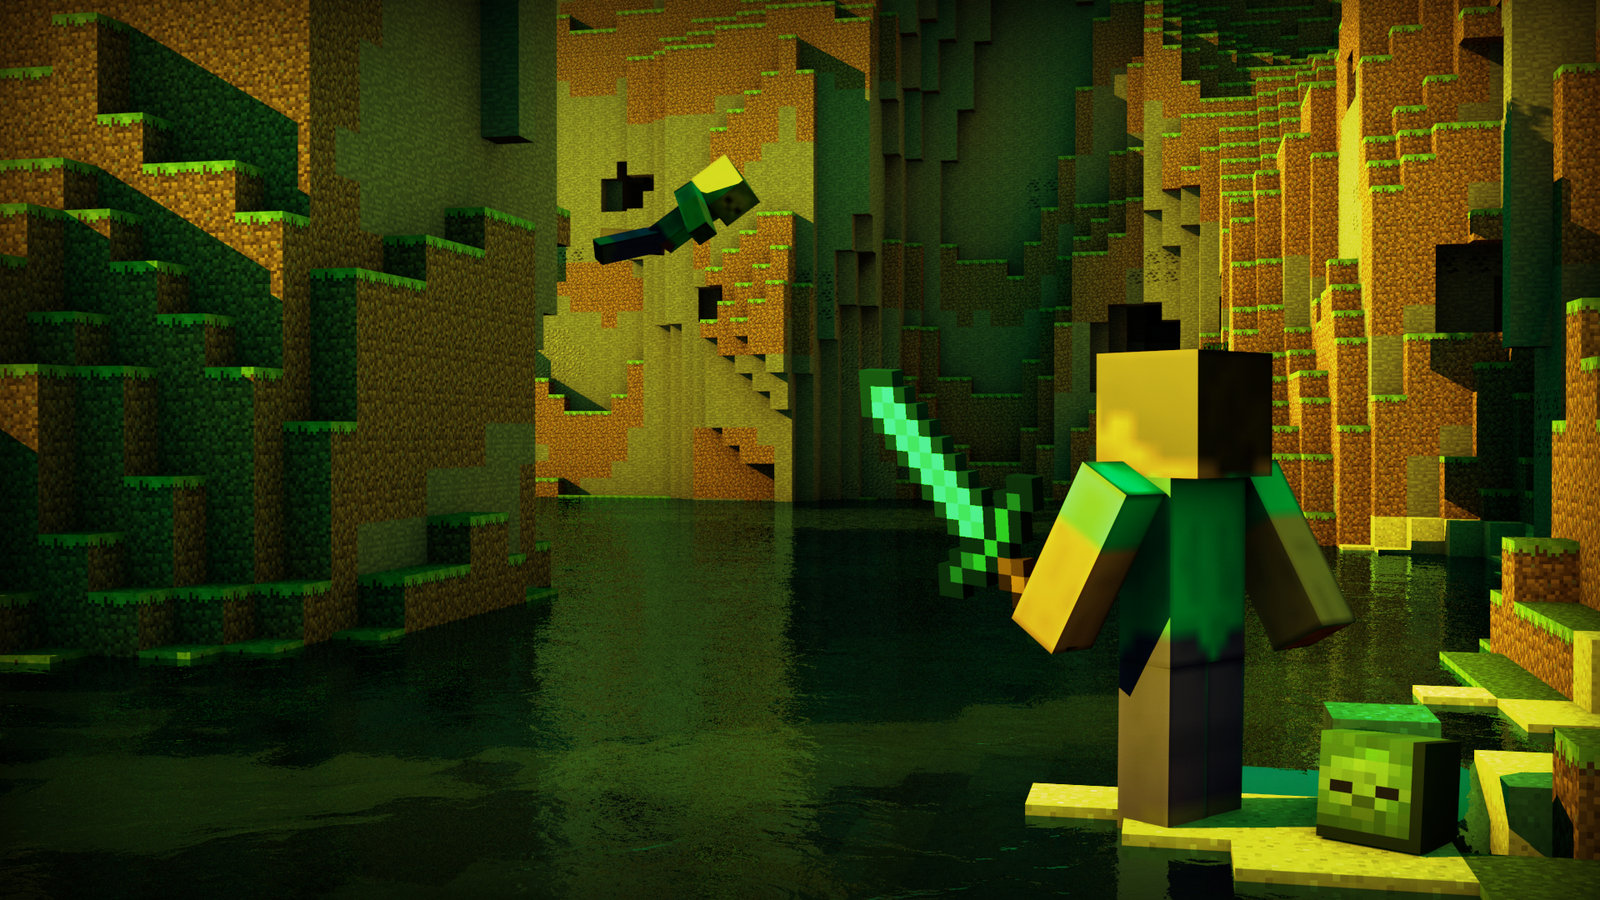 minecraft wallpaper by killer3276 fan art wallpaper games 2012 2015 1600x900